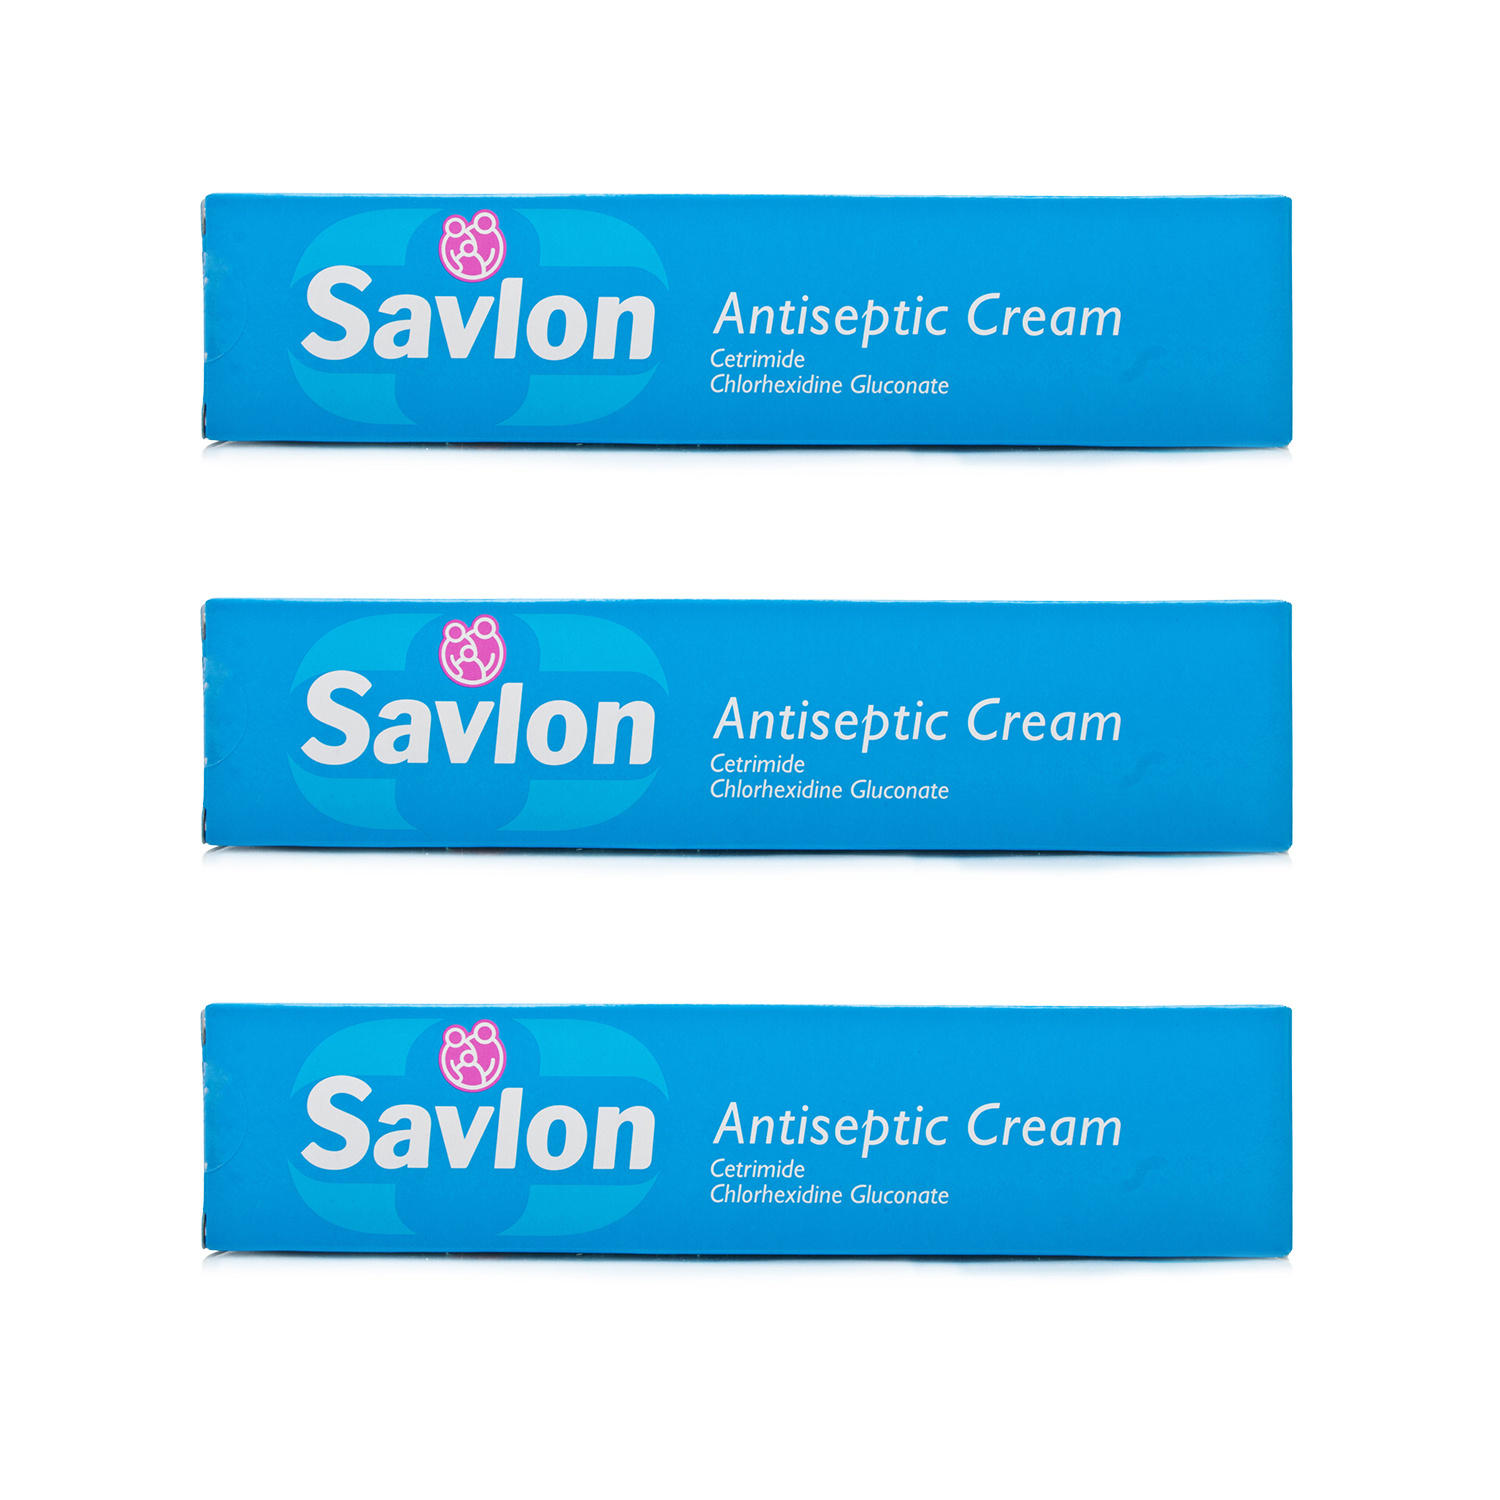 Savlon Antiseptic Cream 100g  Triple Pack